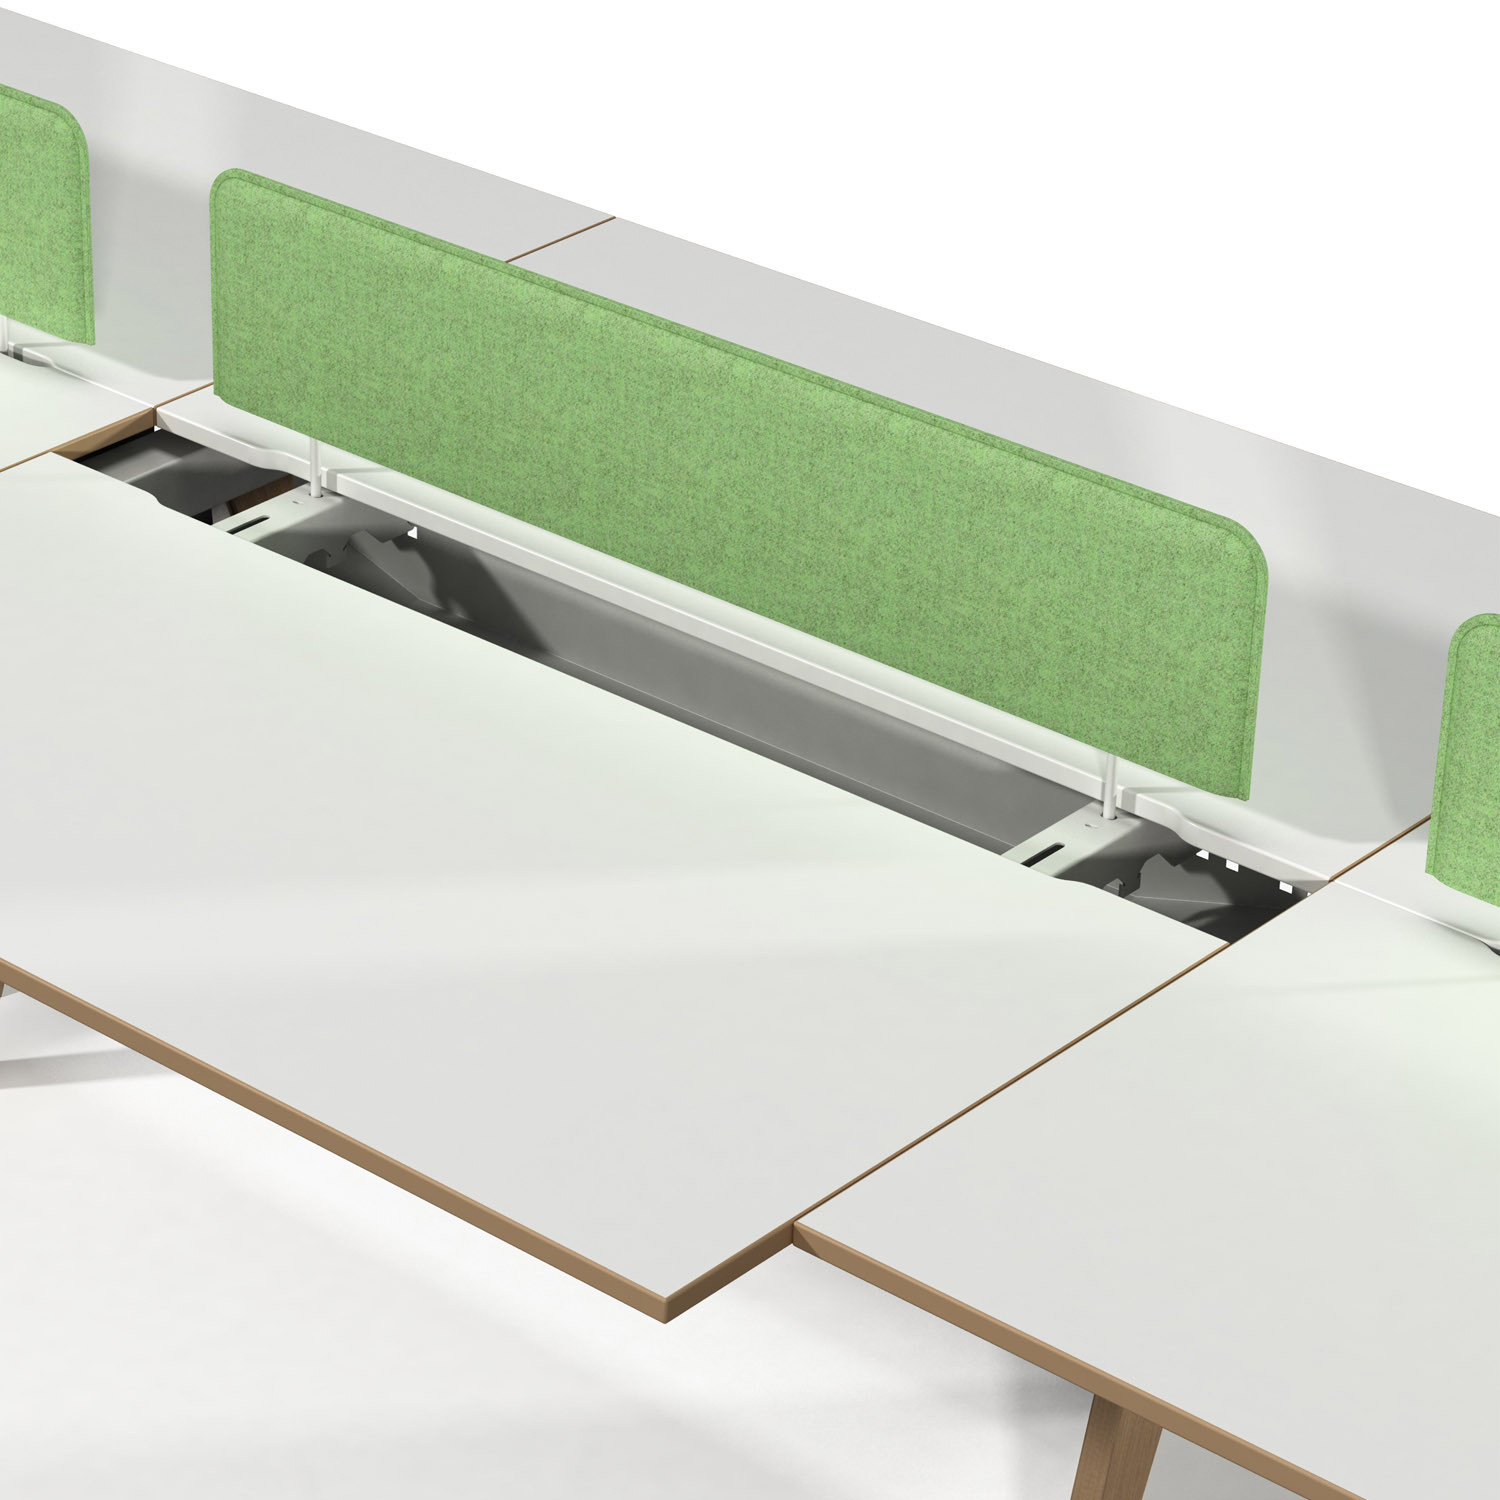 EC4 Bench Desks with Sliding Top